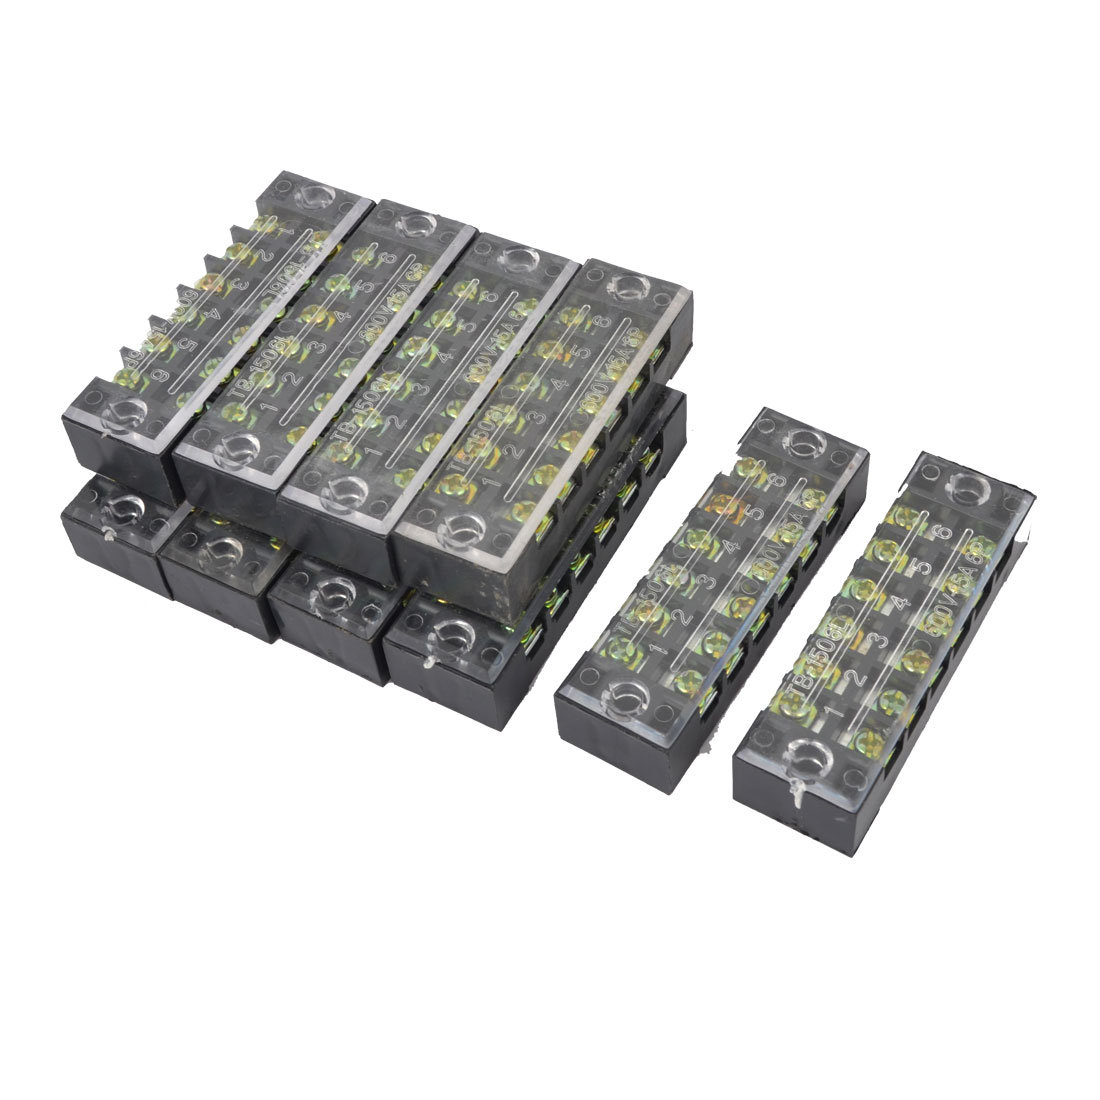 10pcs TB-1506 Two Row 6 Position Terminal Blocks Replacement 600V 15A